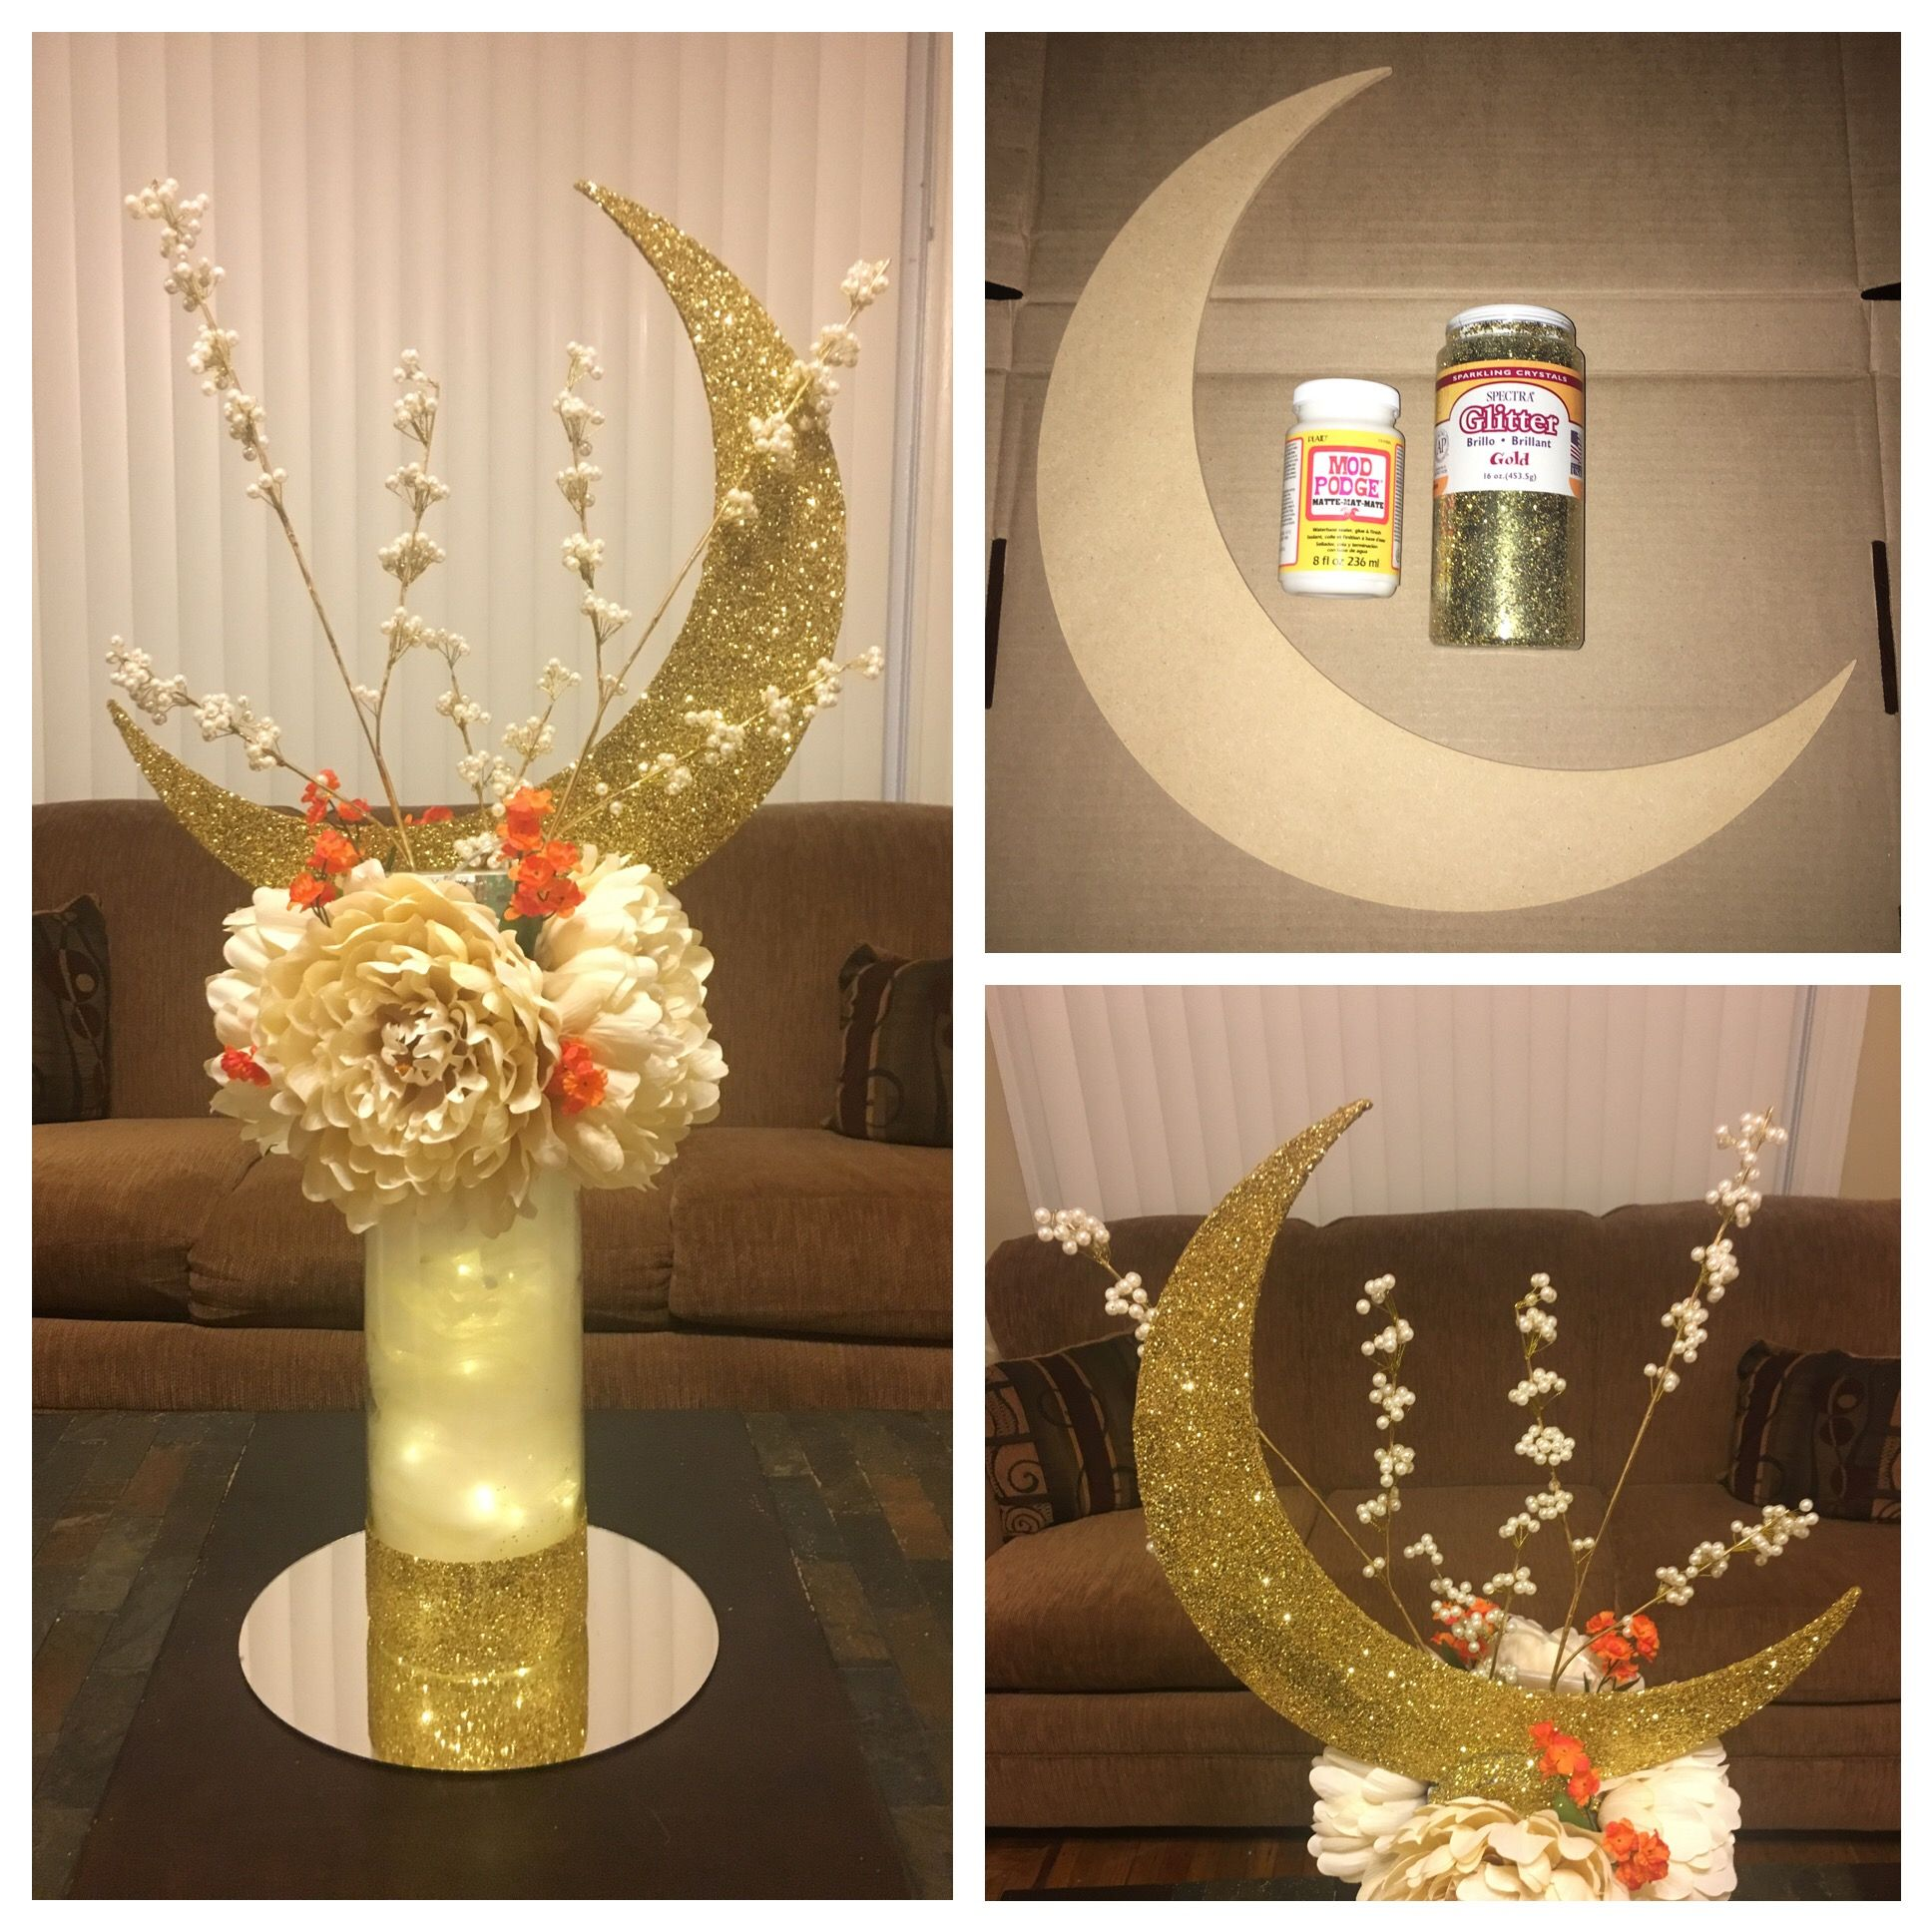 Star Themed Gifts Diy Signature Moon Centerpiece By S Type Pro